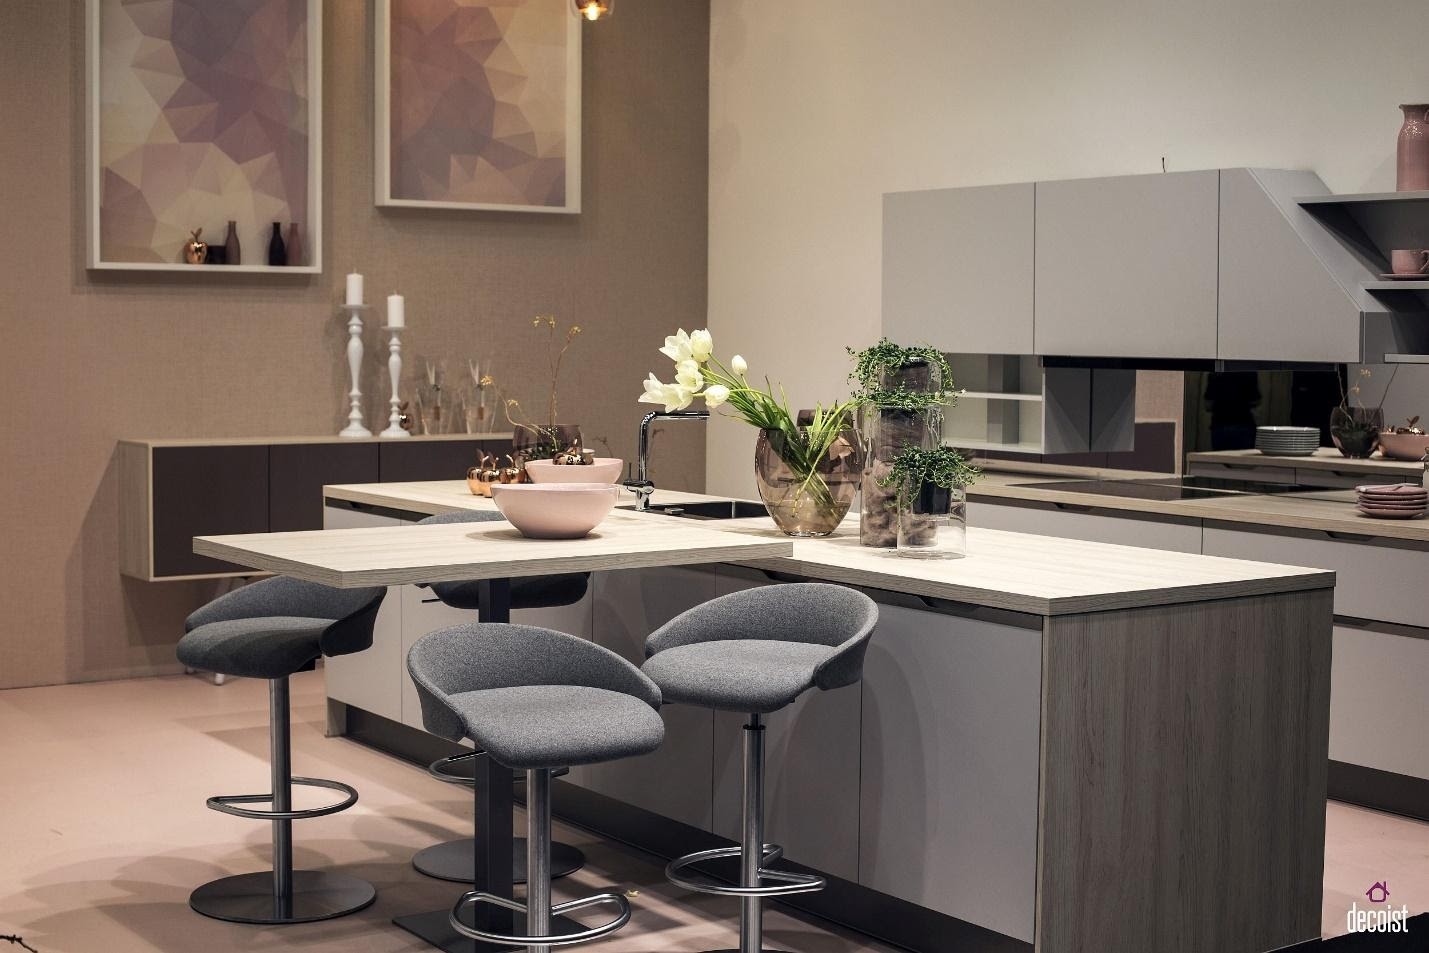 7. Kitchen Island Extension by simphome.com